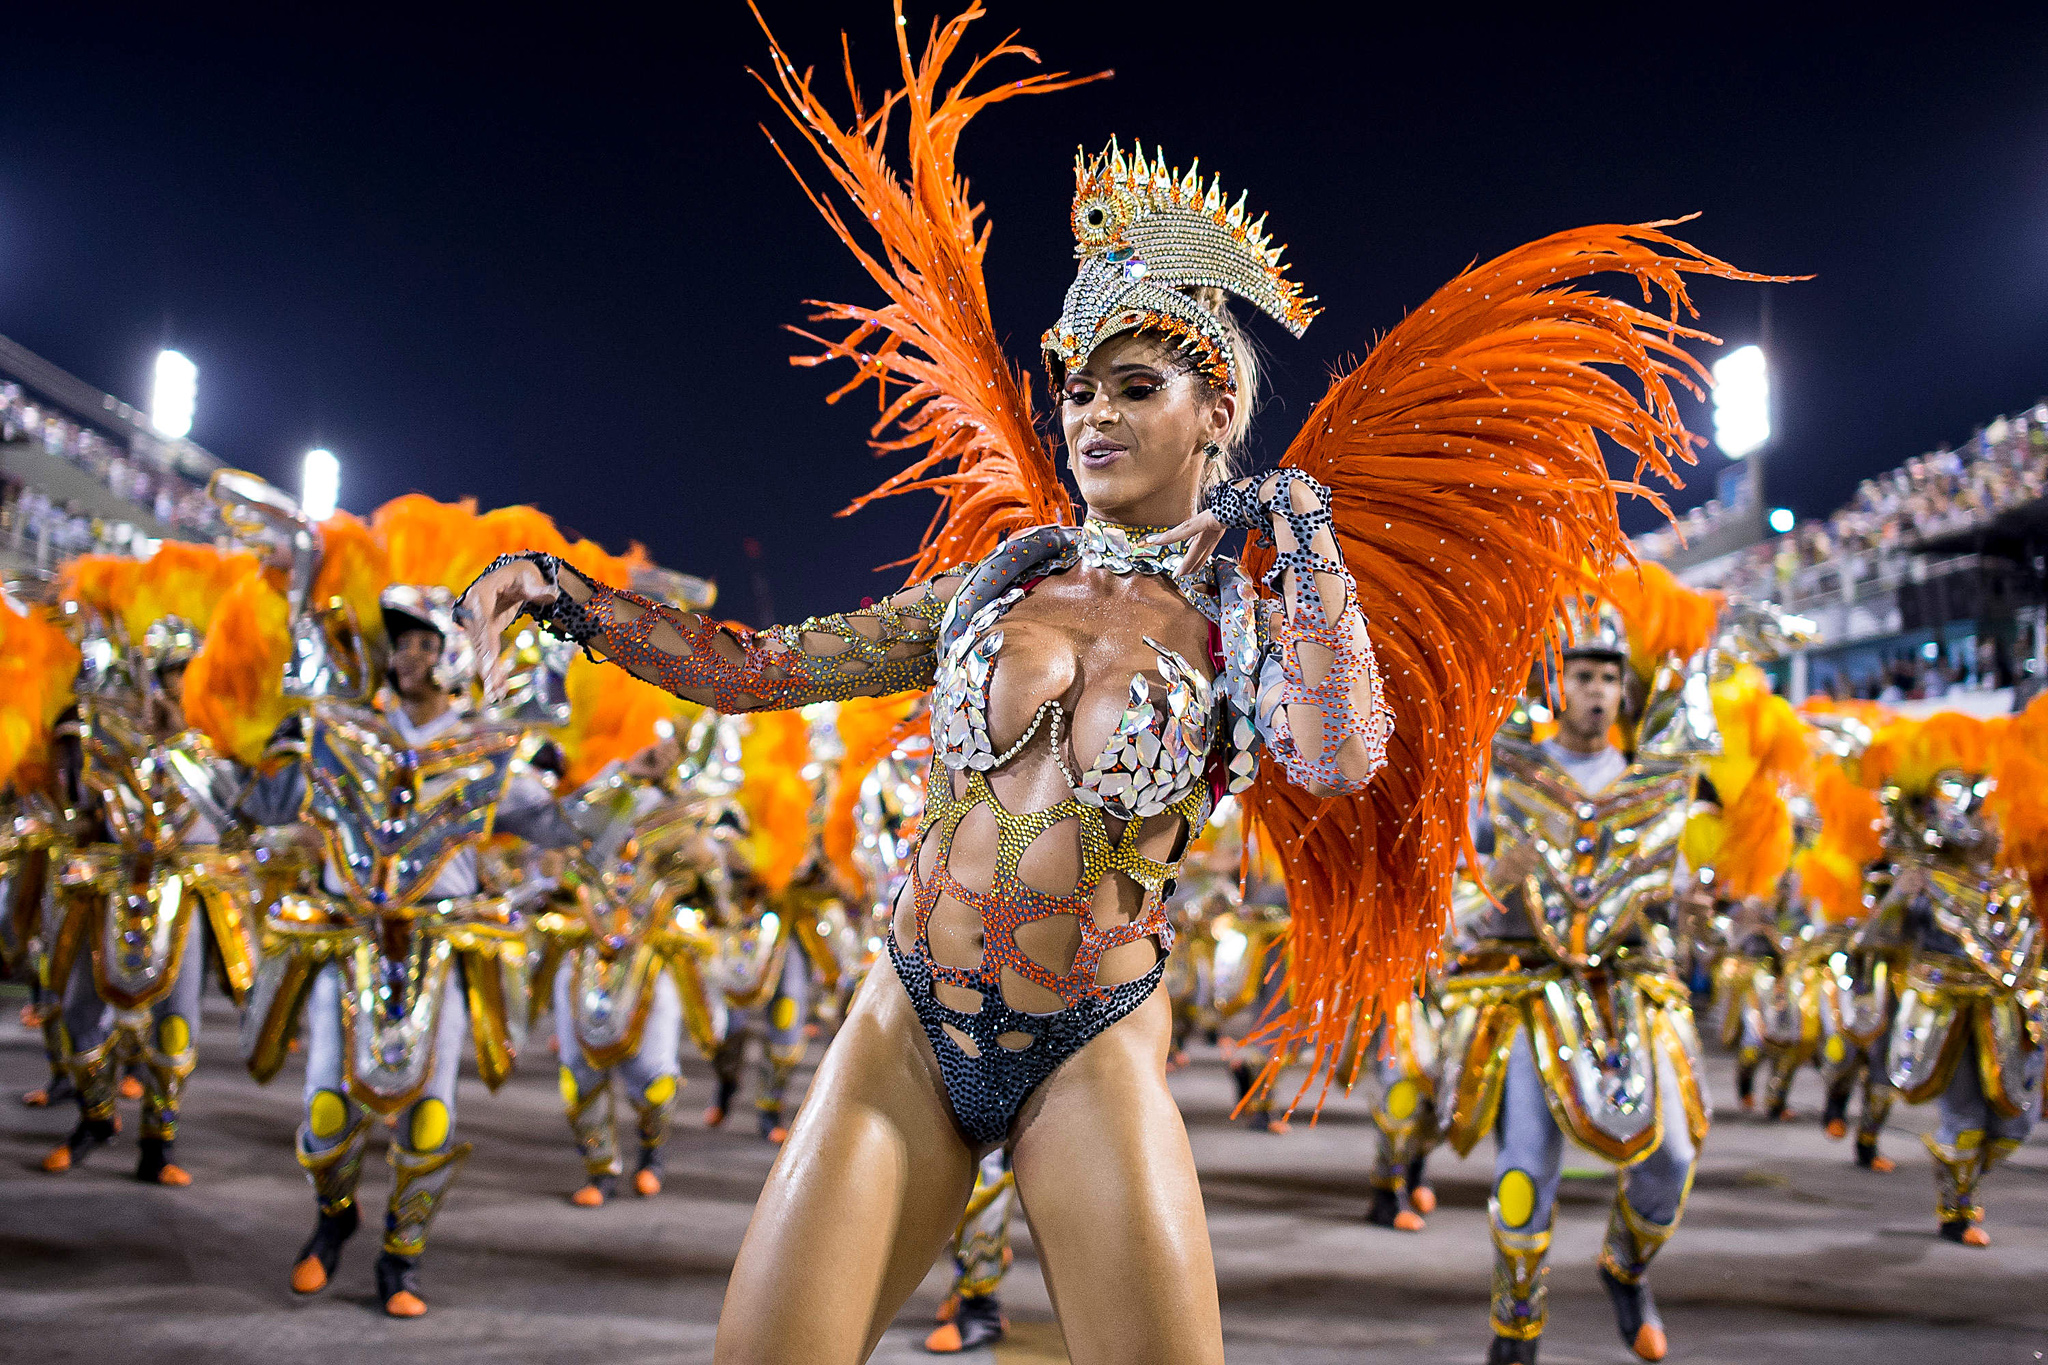 Photos Meet The 25 Sexiest Brazilian Carnival Dancers For -1364